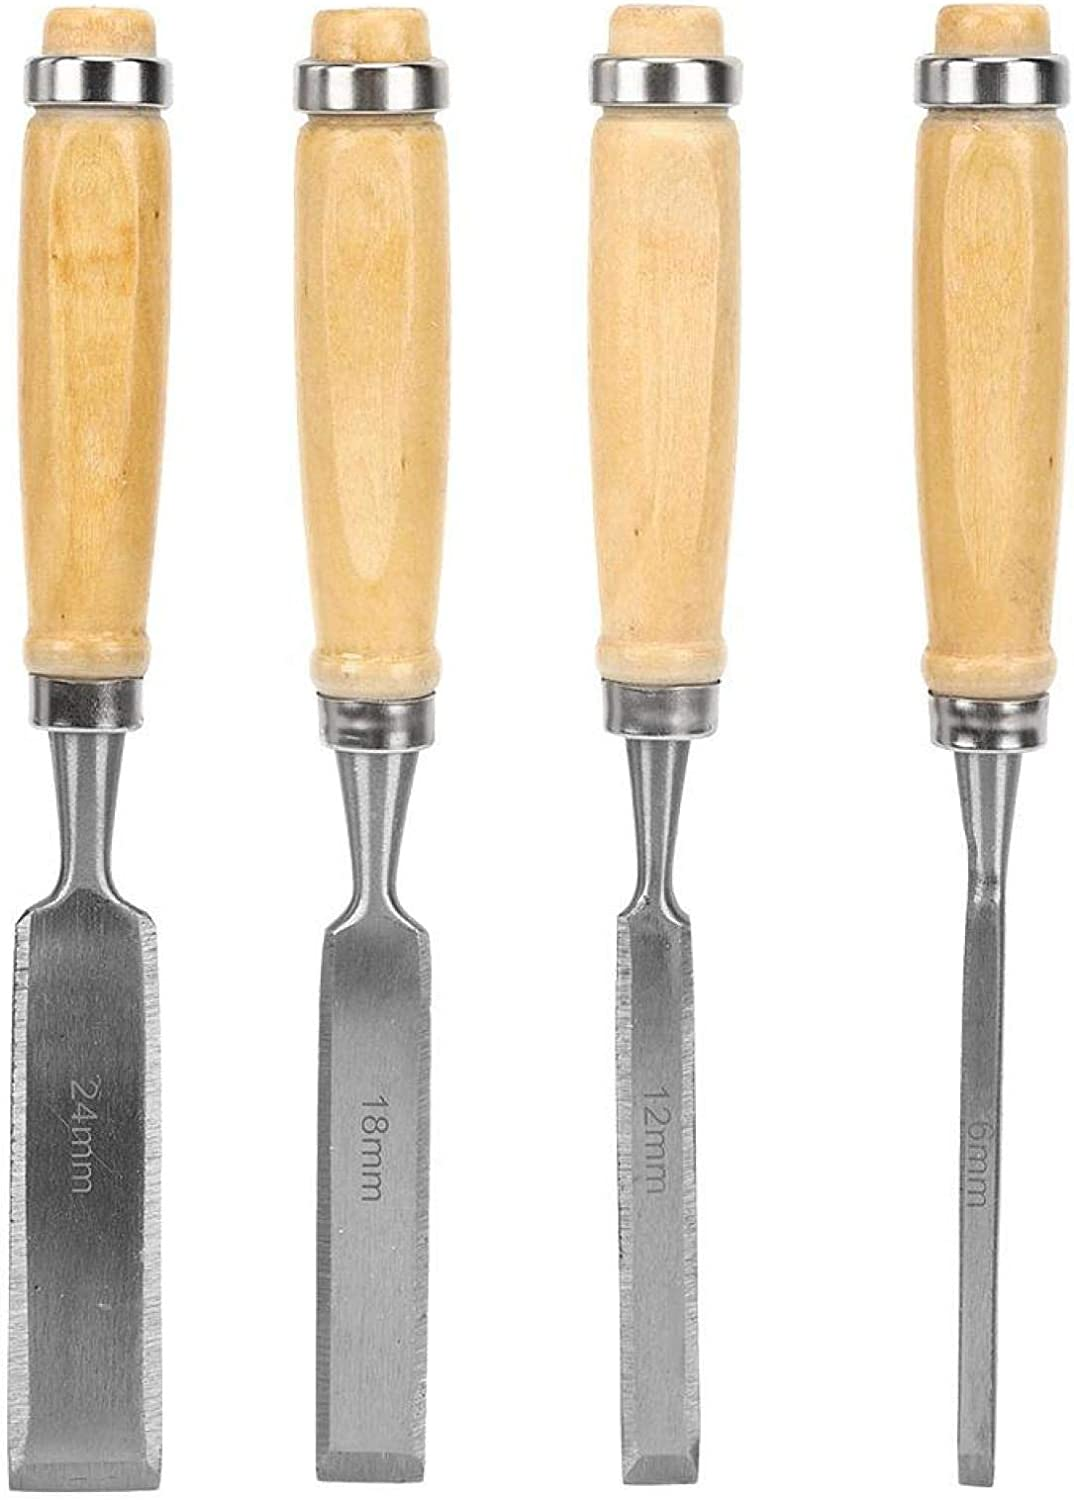 New products world's highest quality popular Wood Max 41% OFF Carving Chisel 4pcs Wooden Chrom Tool Engraving Handle Set